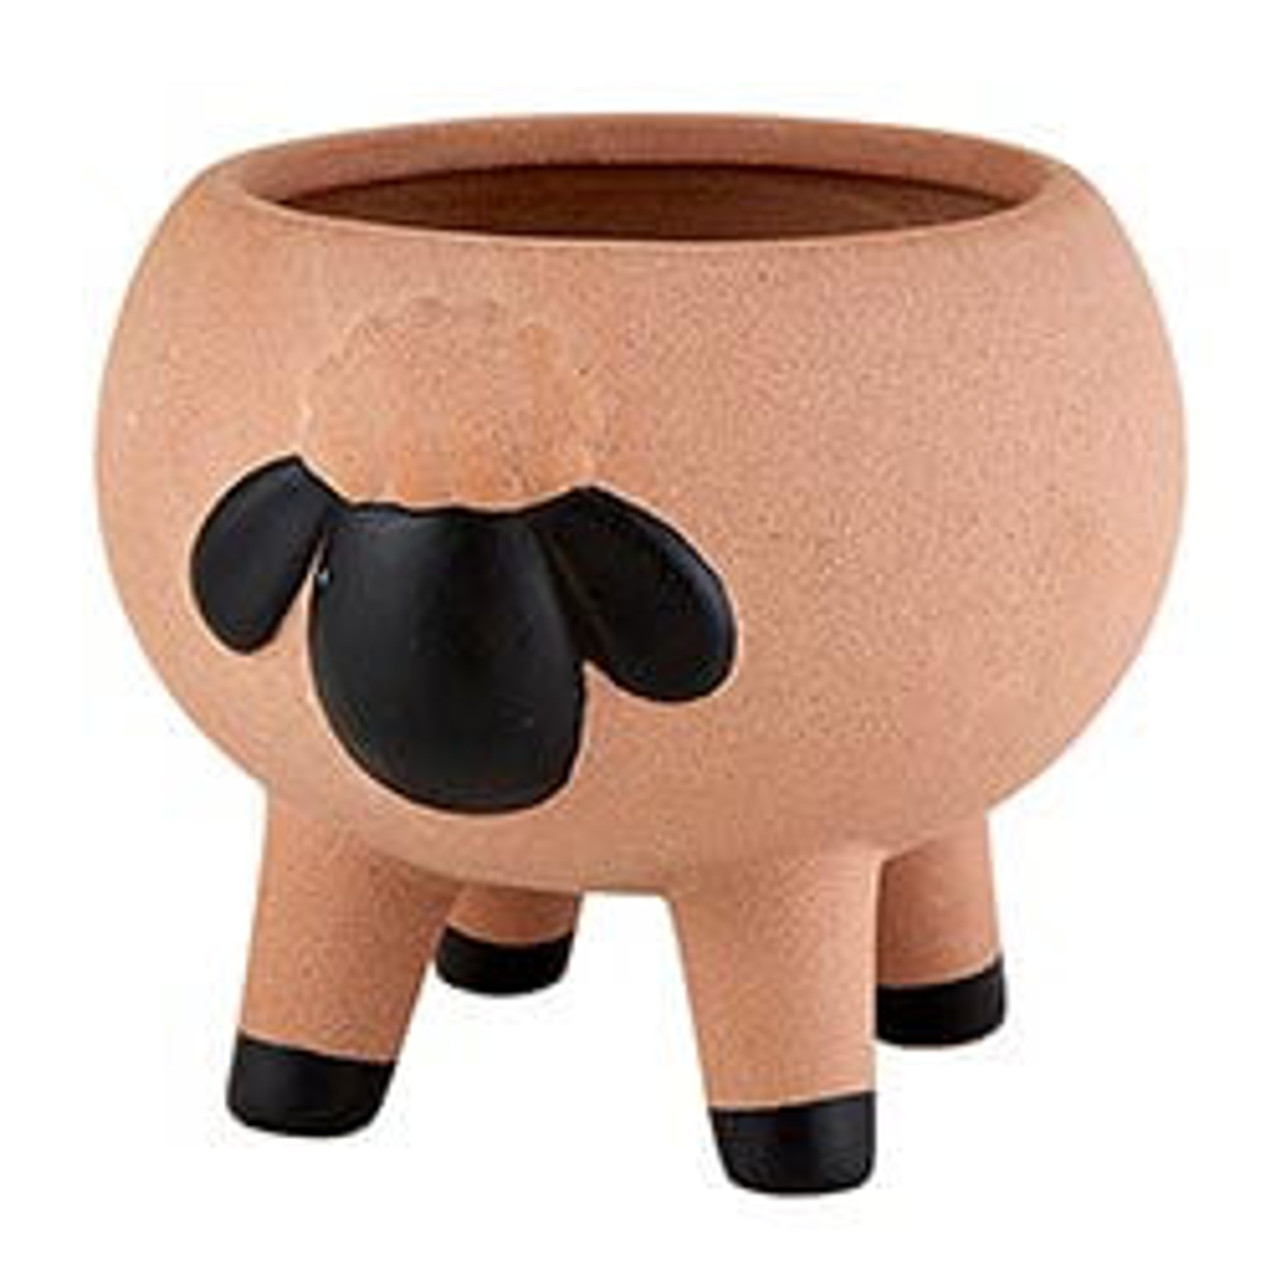 """This adorable ceramic planter features a unique animal design. Great for adding stylish touch to your home and office décor. 3 1/2"""" H x 3 5/8"""" W"""